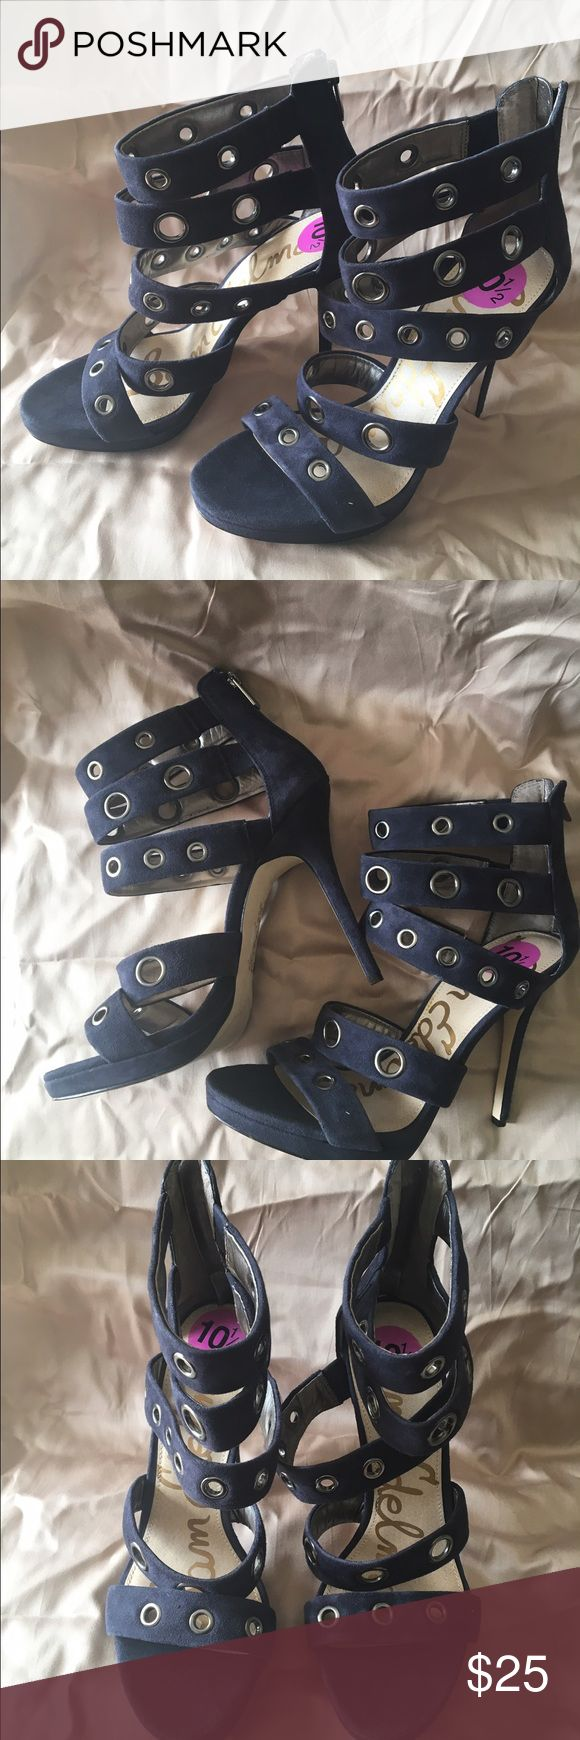 "Sam Edelman Navy Heeled Sandals sz 10.5 Navy suede sexy 6"" high heels, perfect for a night out! Silver cutout embellishment in straps.  Never been worn. Mini platform provides added comfort. Sam Edelman Shoes Heels"